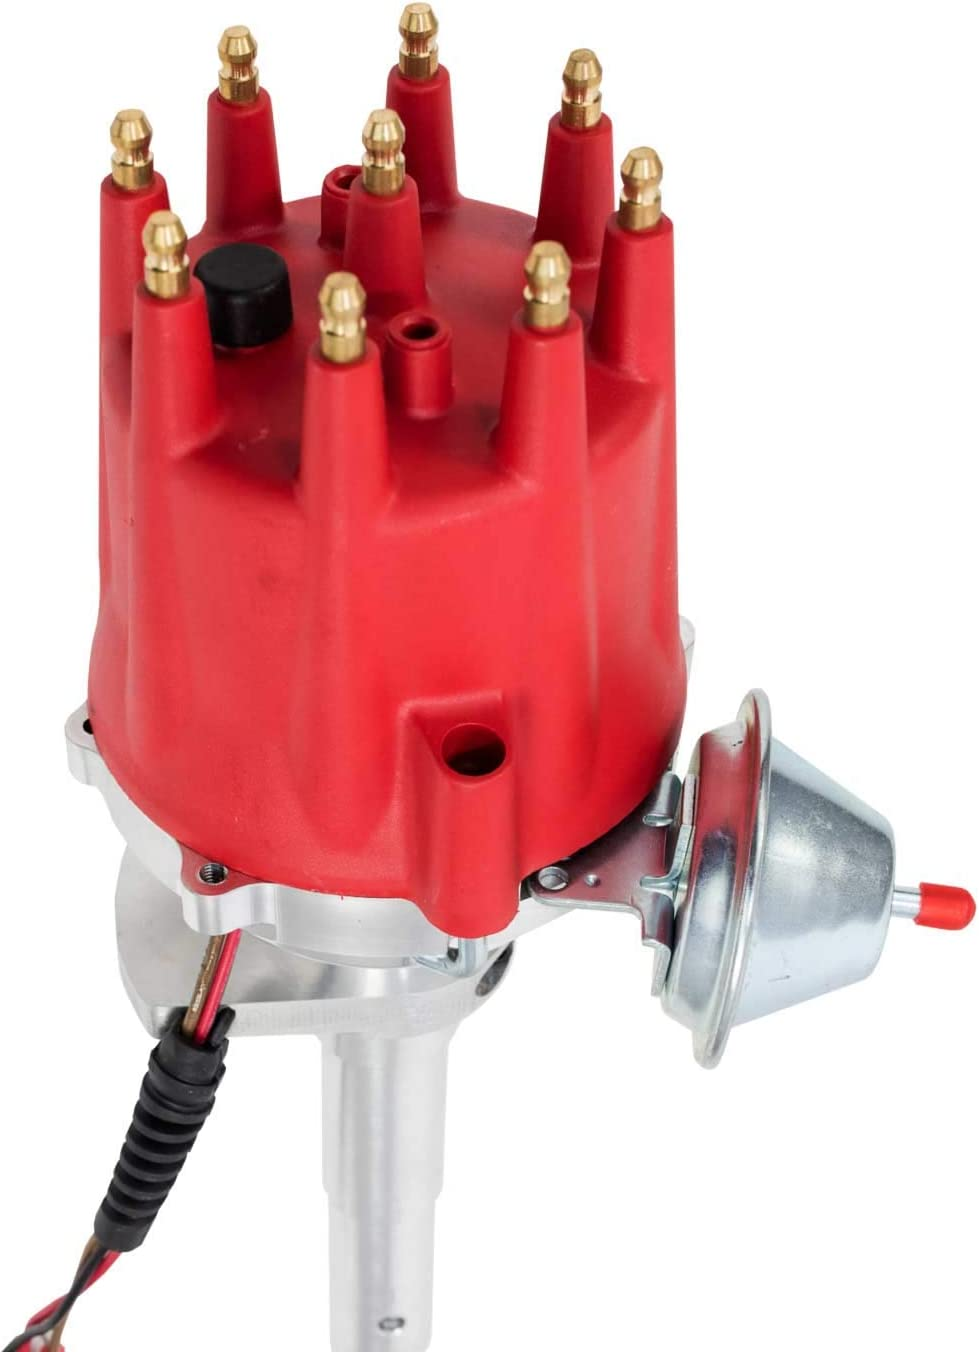 A-Team Performance Pro Series Ready to Run R2R Distributor Compatible With Ford Flathead 239 255 V8 Engine Blue Cap